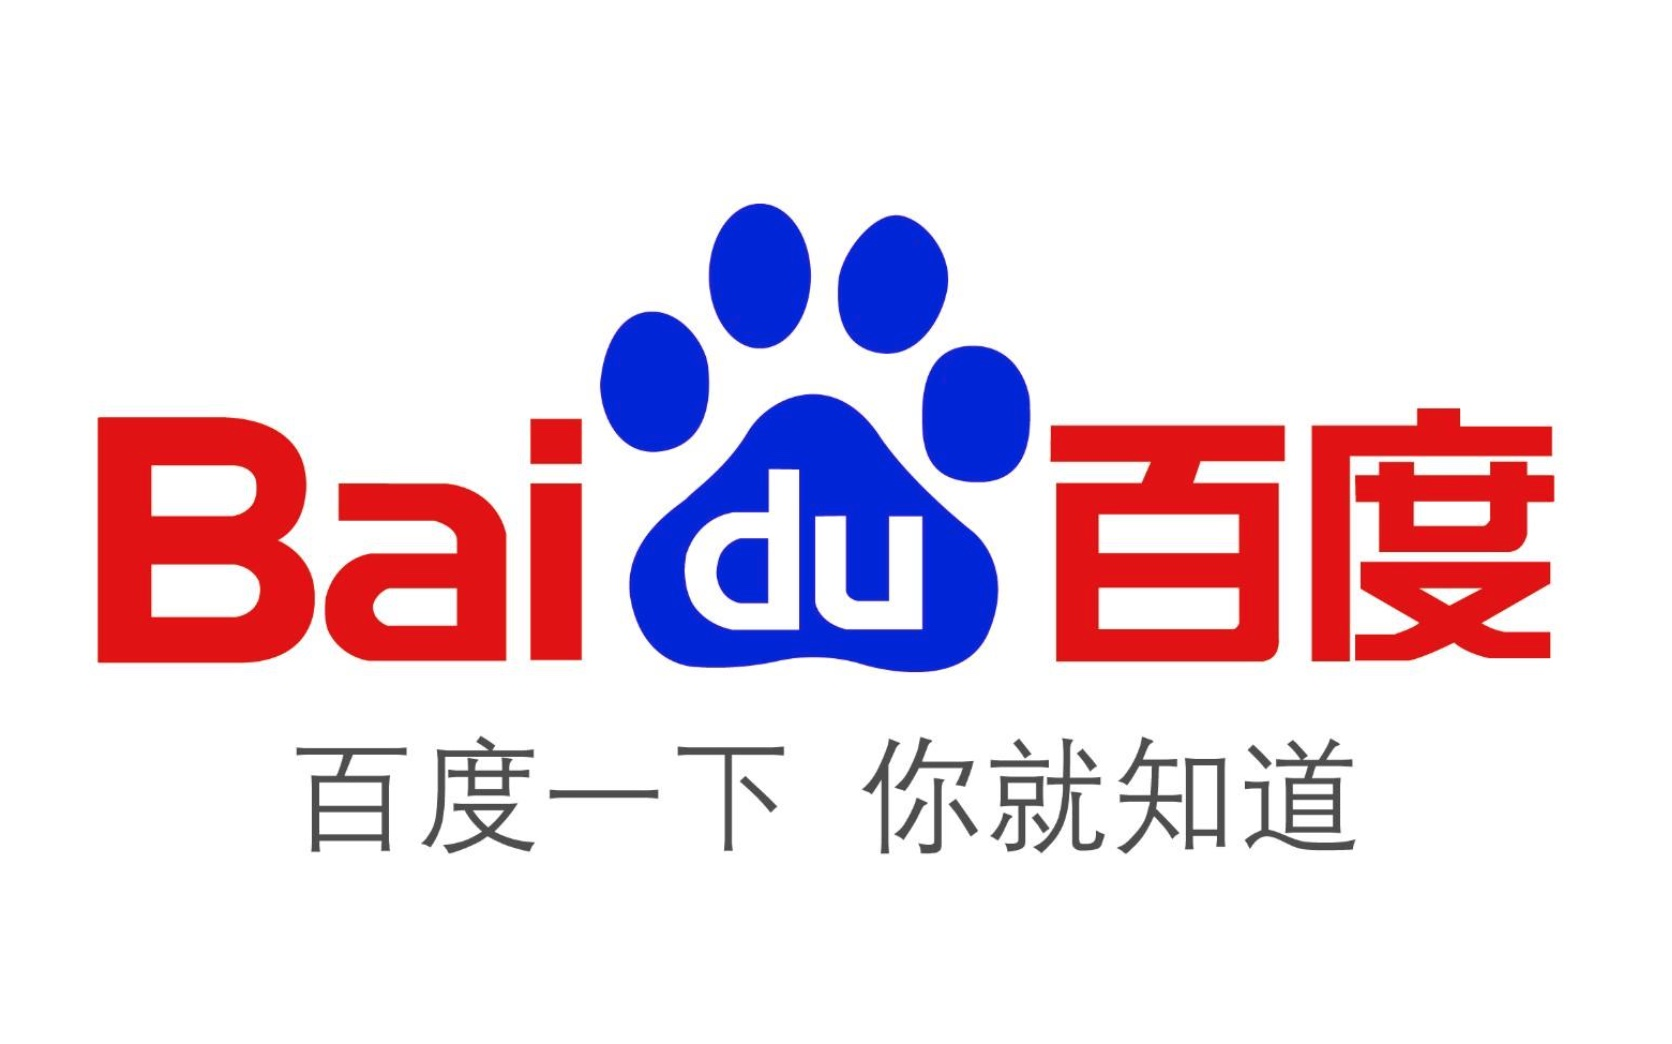 Baidu has recently been planning to split several of its businesses internally and possibly make them go public independently, according a report toda